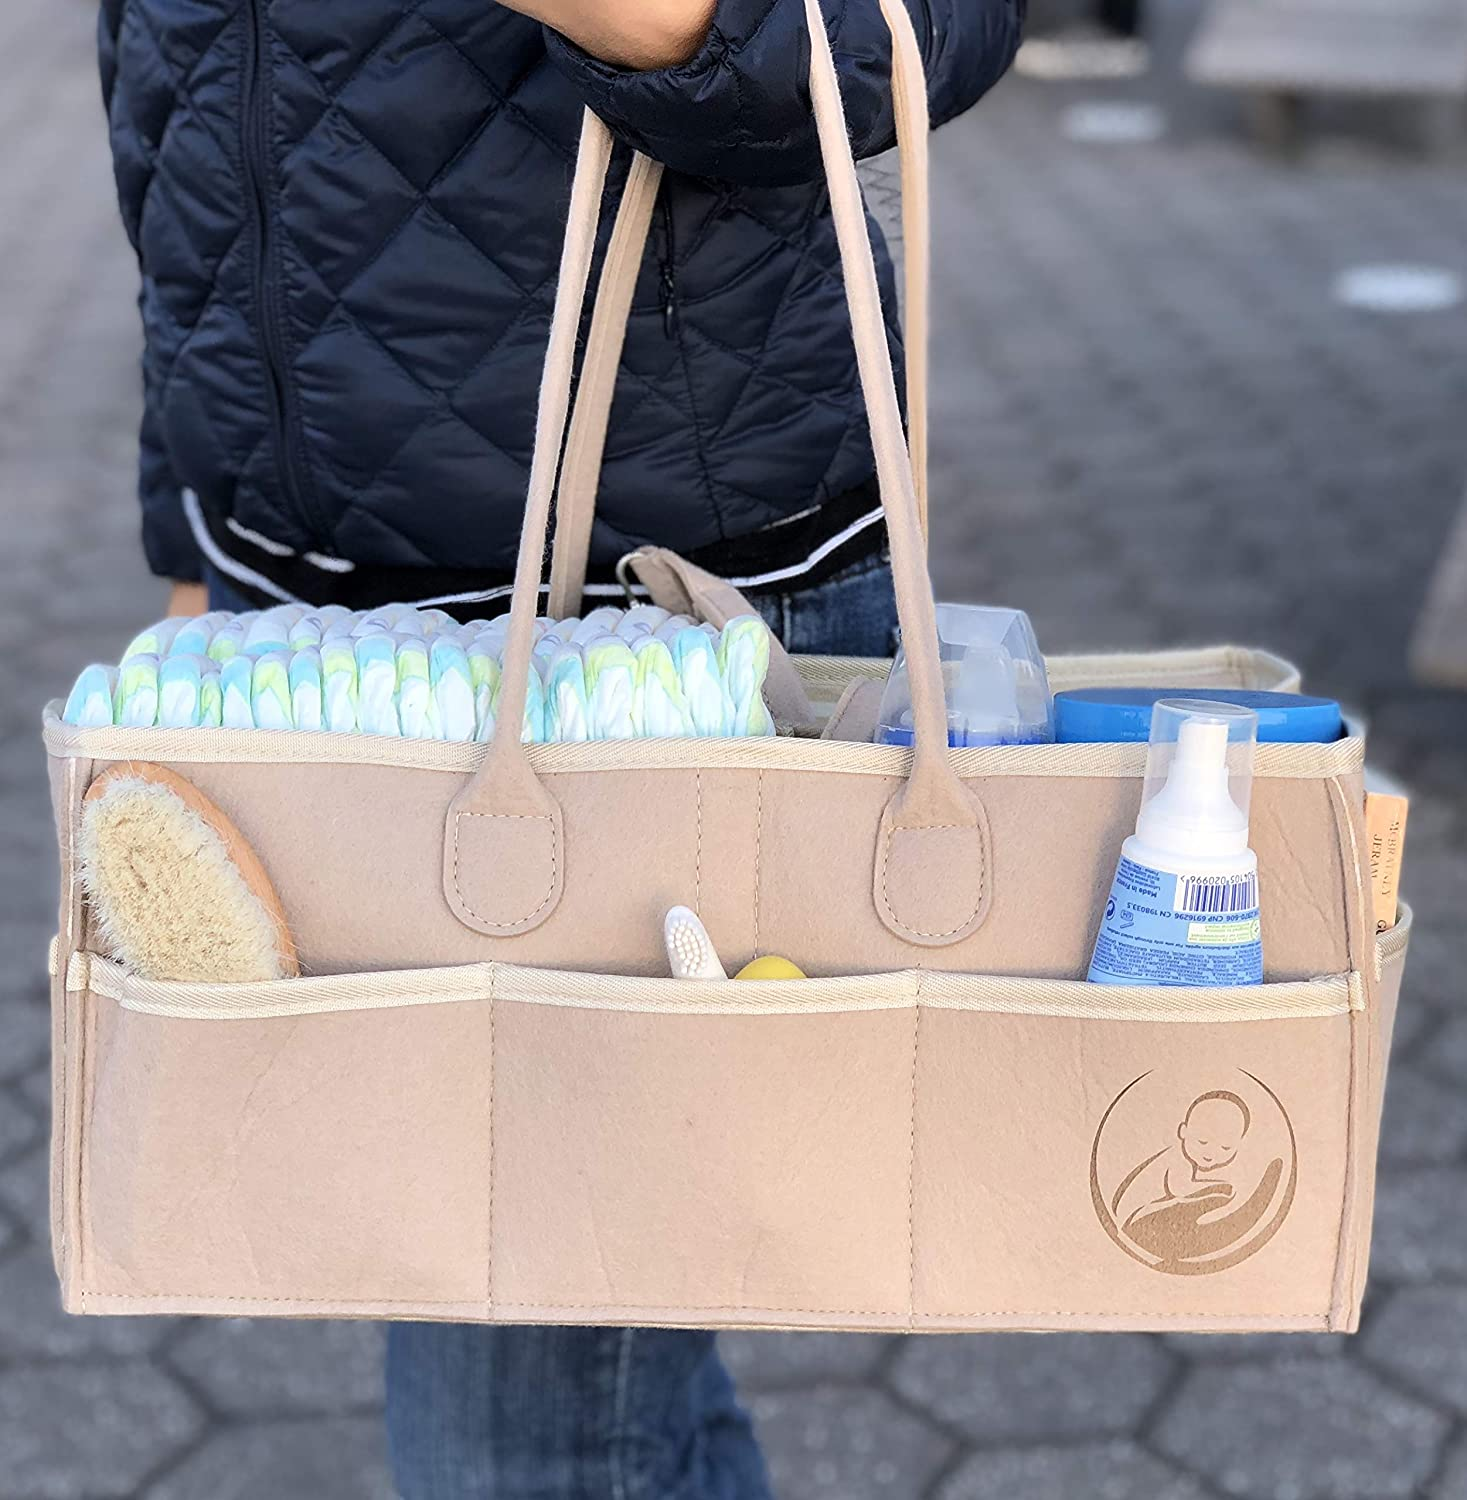 diapers /& cream |Baby Shower Registry Must Have ProBabyGear Baby Diaper Caddy Organizer Bag -Organic Cotton Lining Essential for Changing Station Table Hypoallergenic Nursery Storage Bin Ex Large for wipes